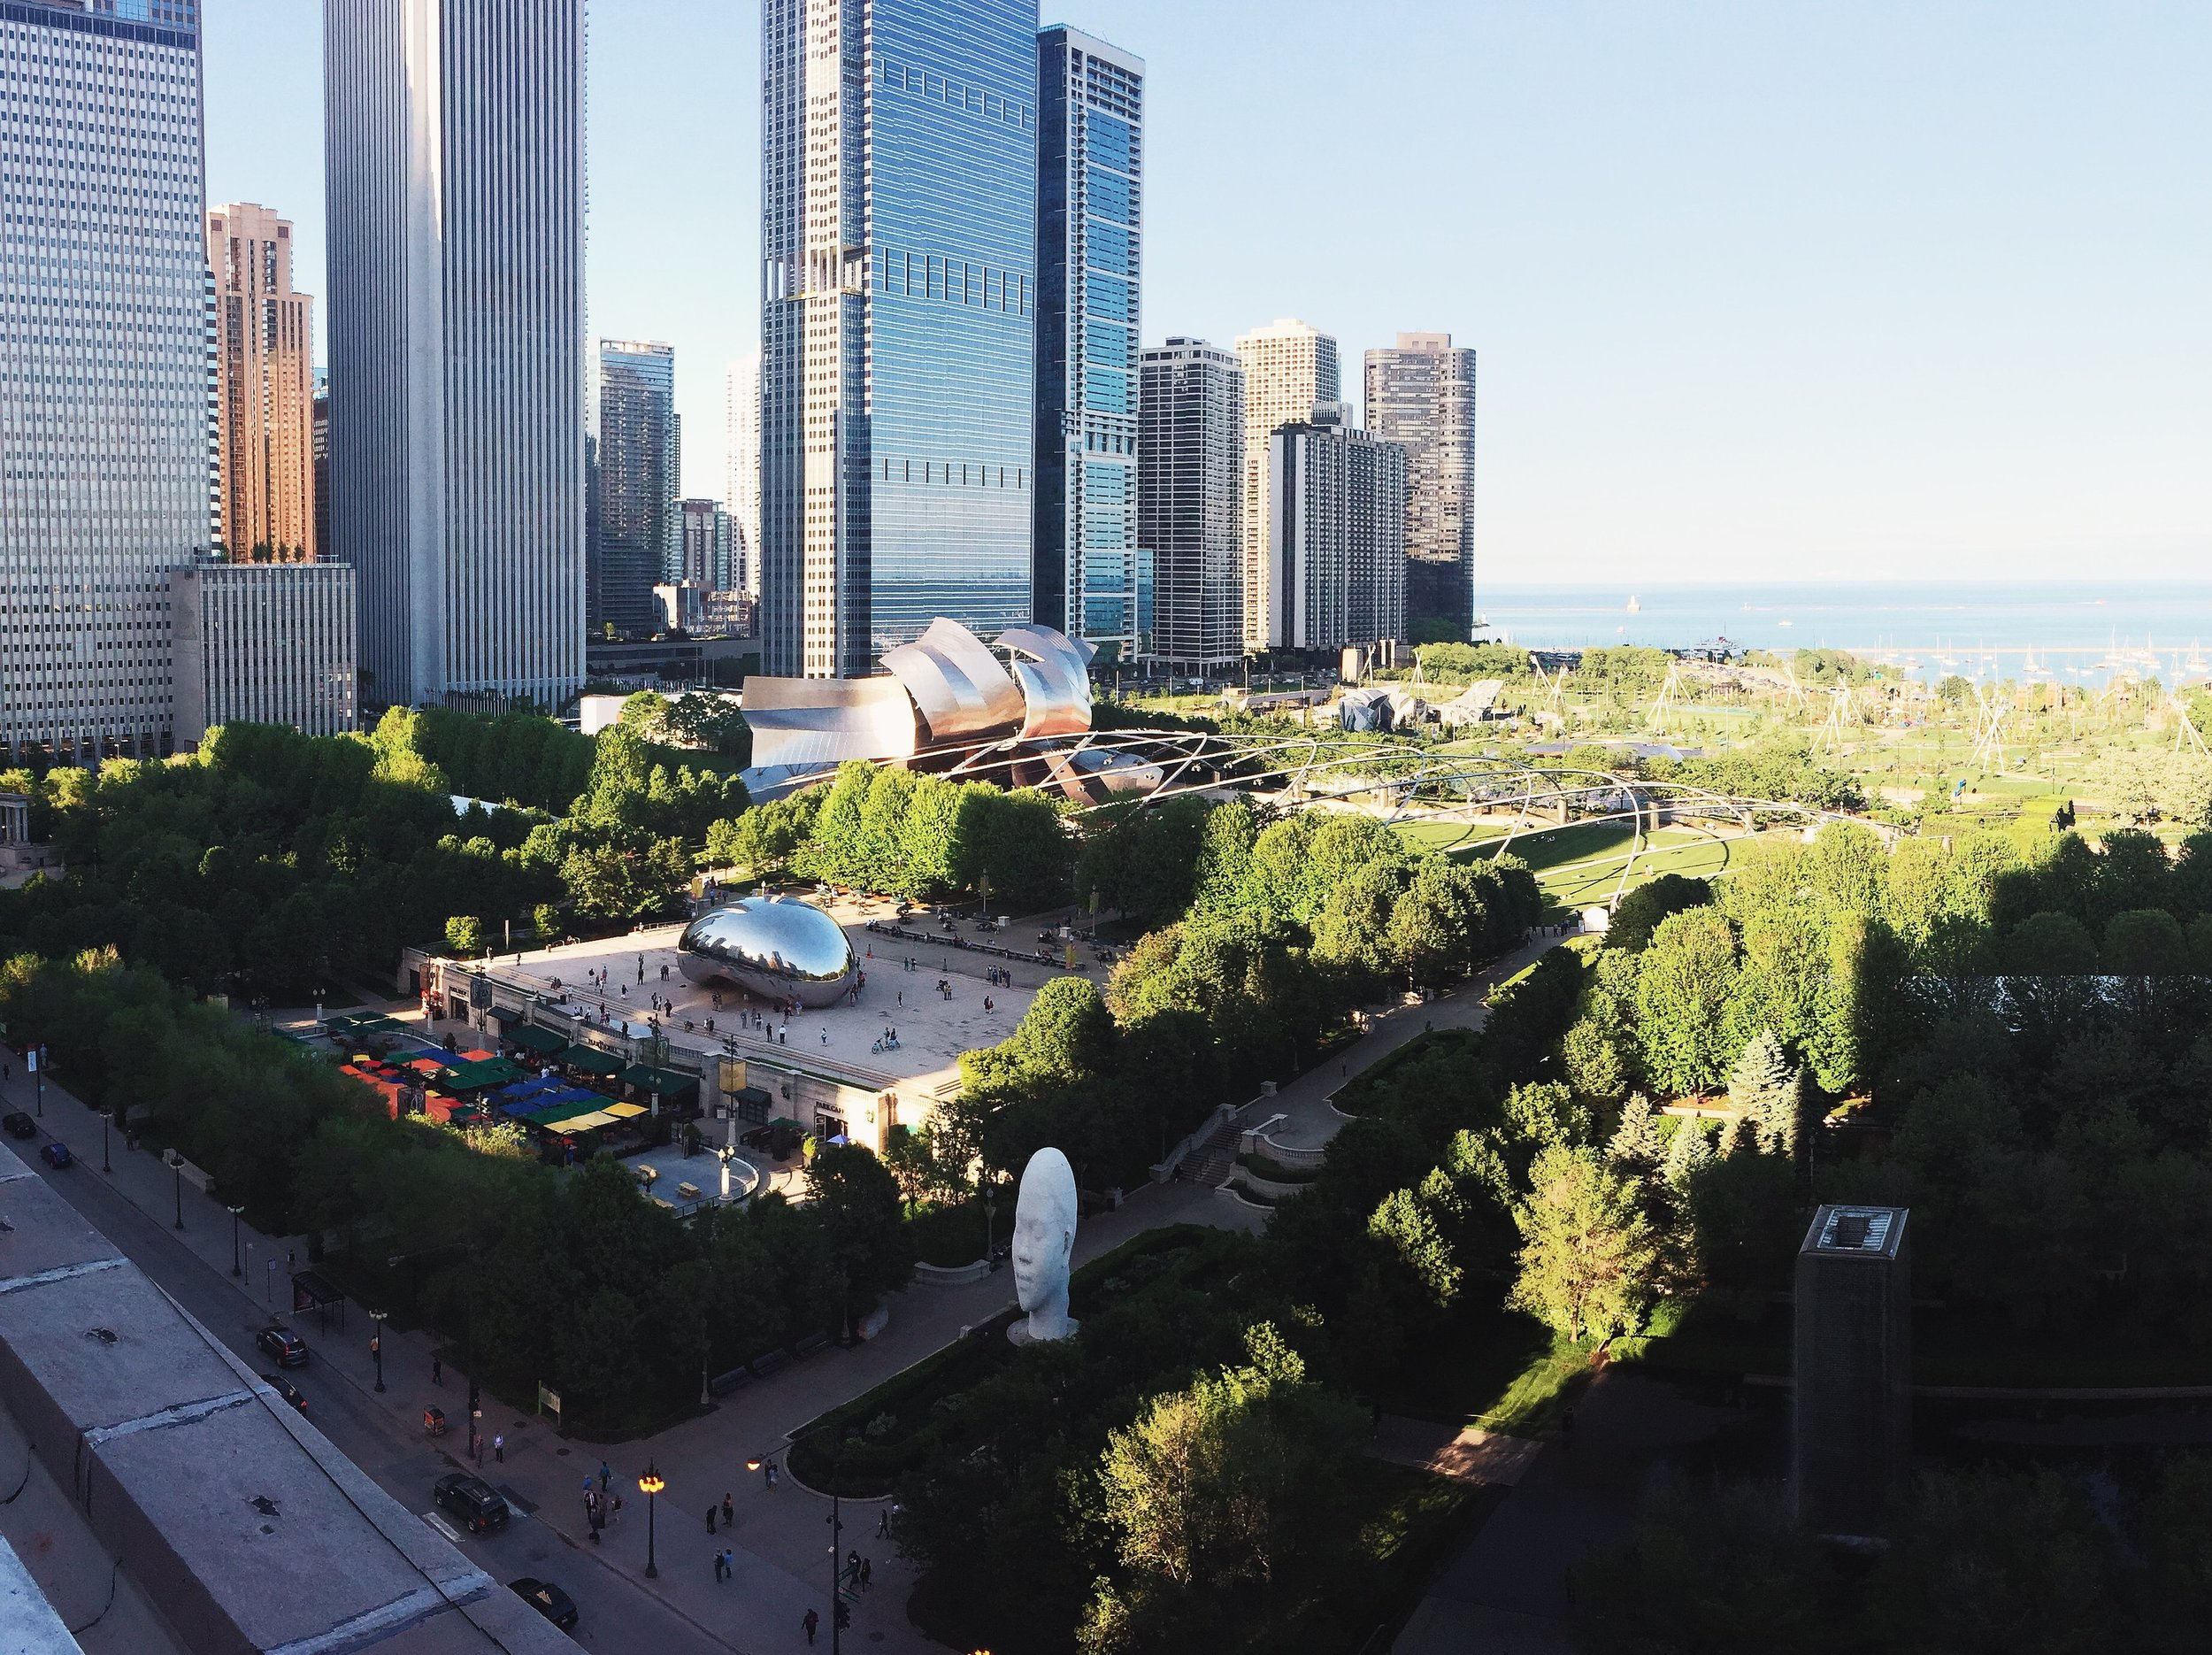 """""""There's a new hotel that recently opened, the  Chicago Athletic Association ,that I went to check out in the few hours between shooting with Michael Mundy. They just opened the roof and it has one of the most incredible views of Chicago looking out over Millennium Park."""""""